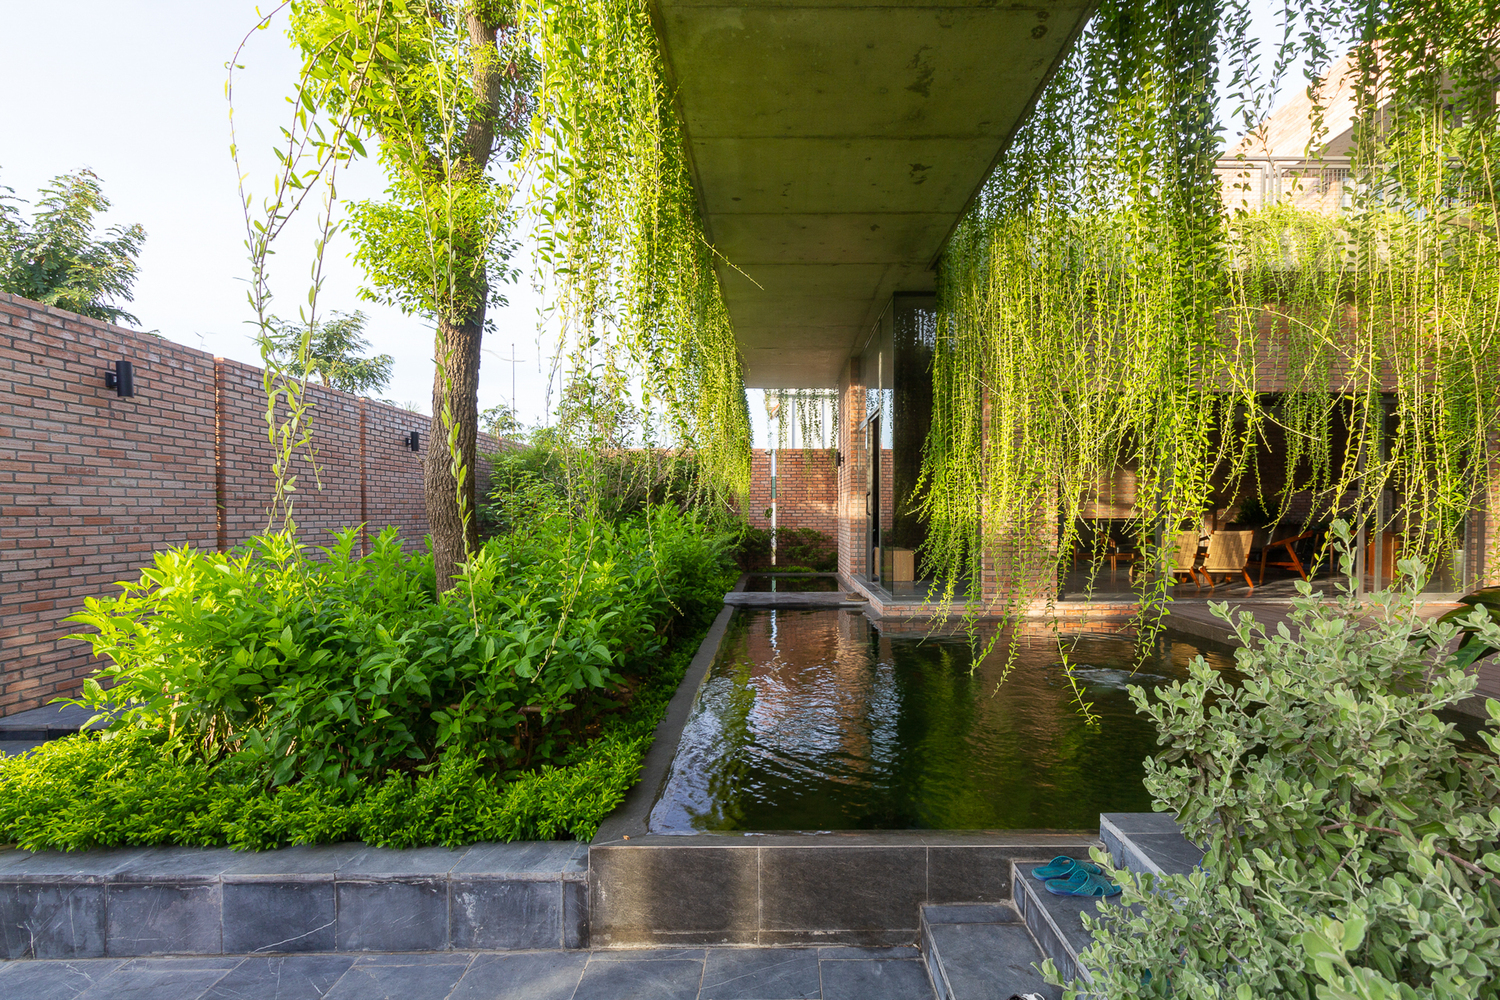 Adding Fresh Hanging Gardens to Residential Architecture